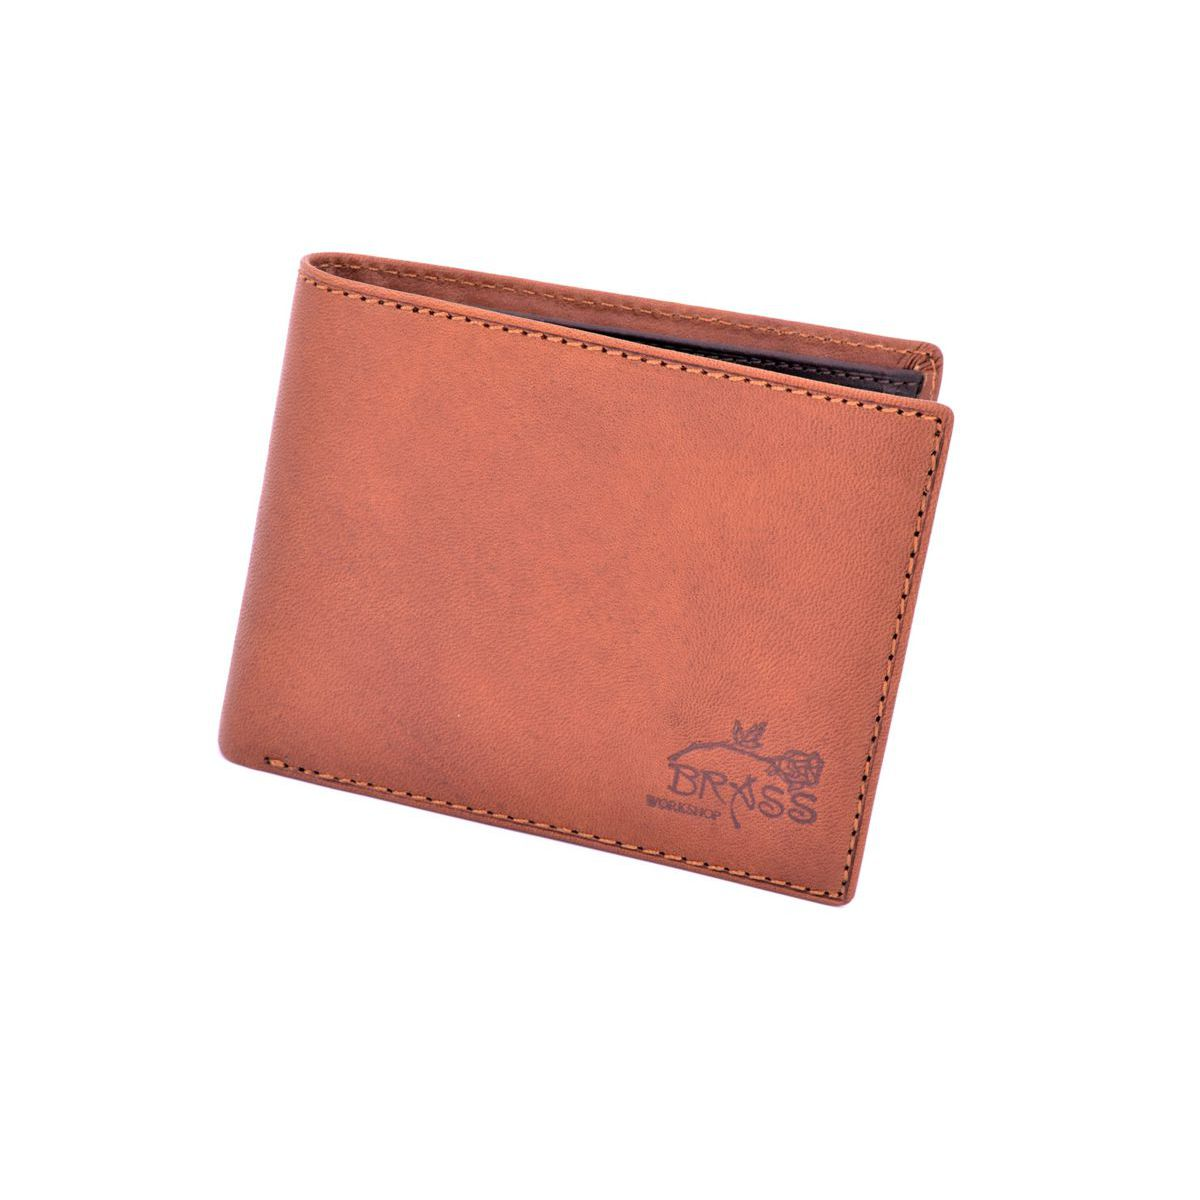 Double color leather wallet Brown BRASS Workshop